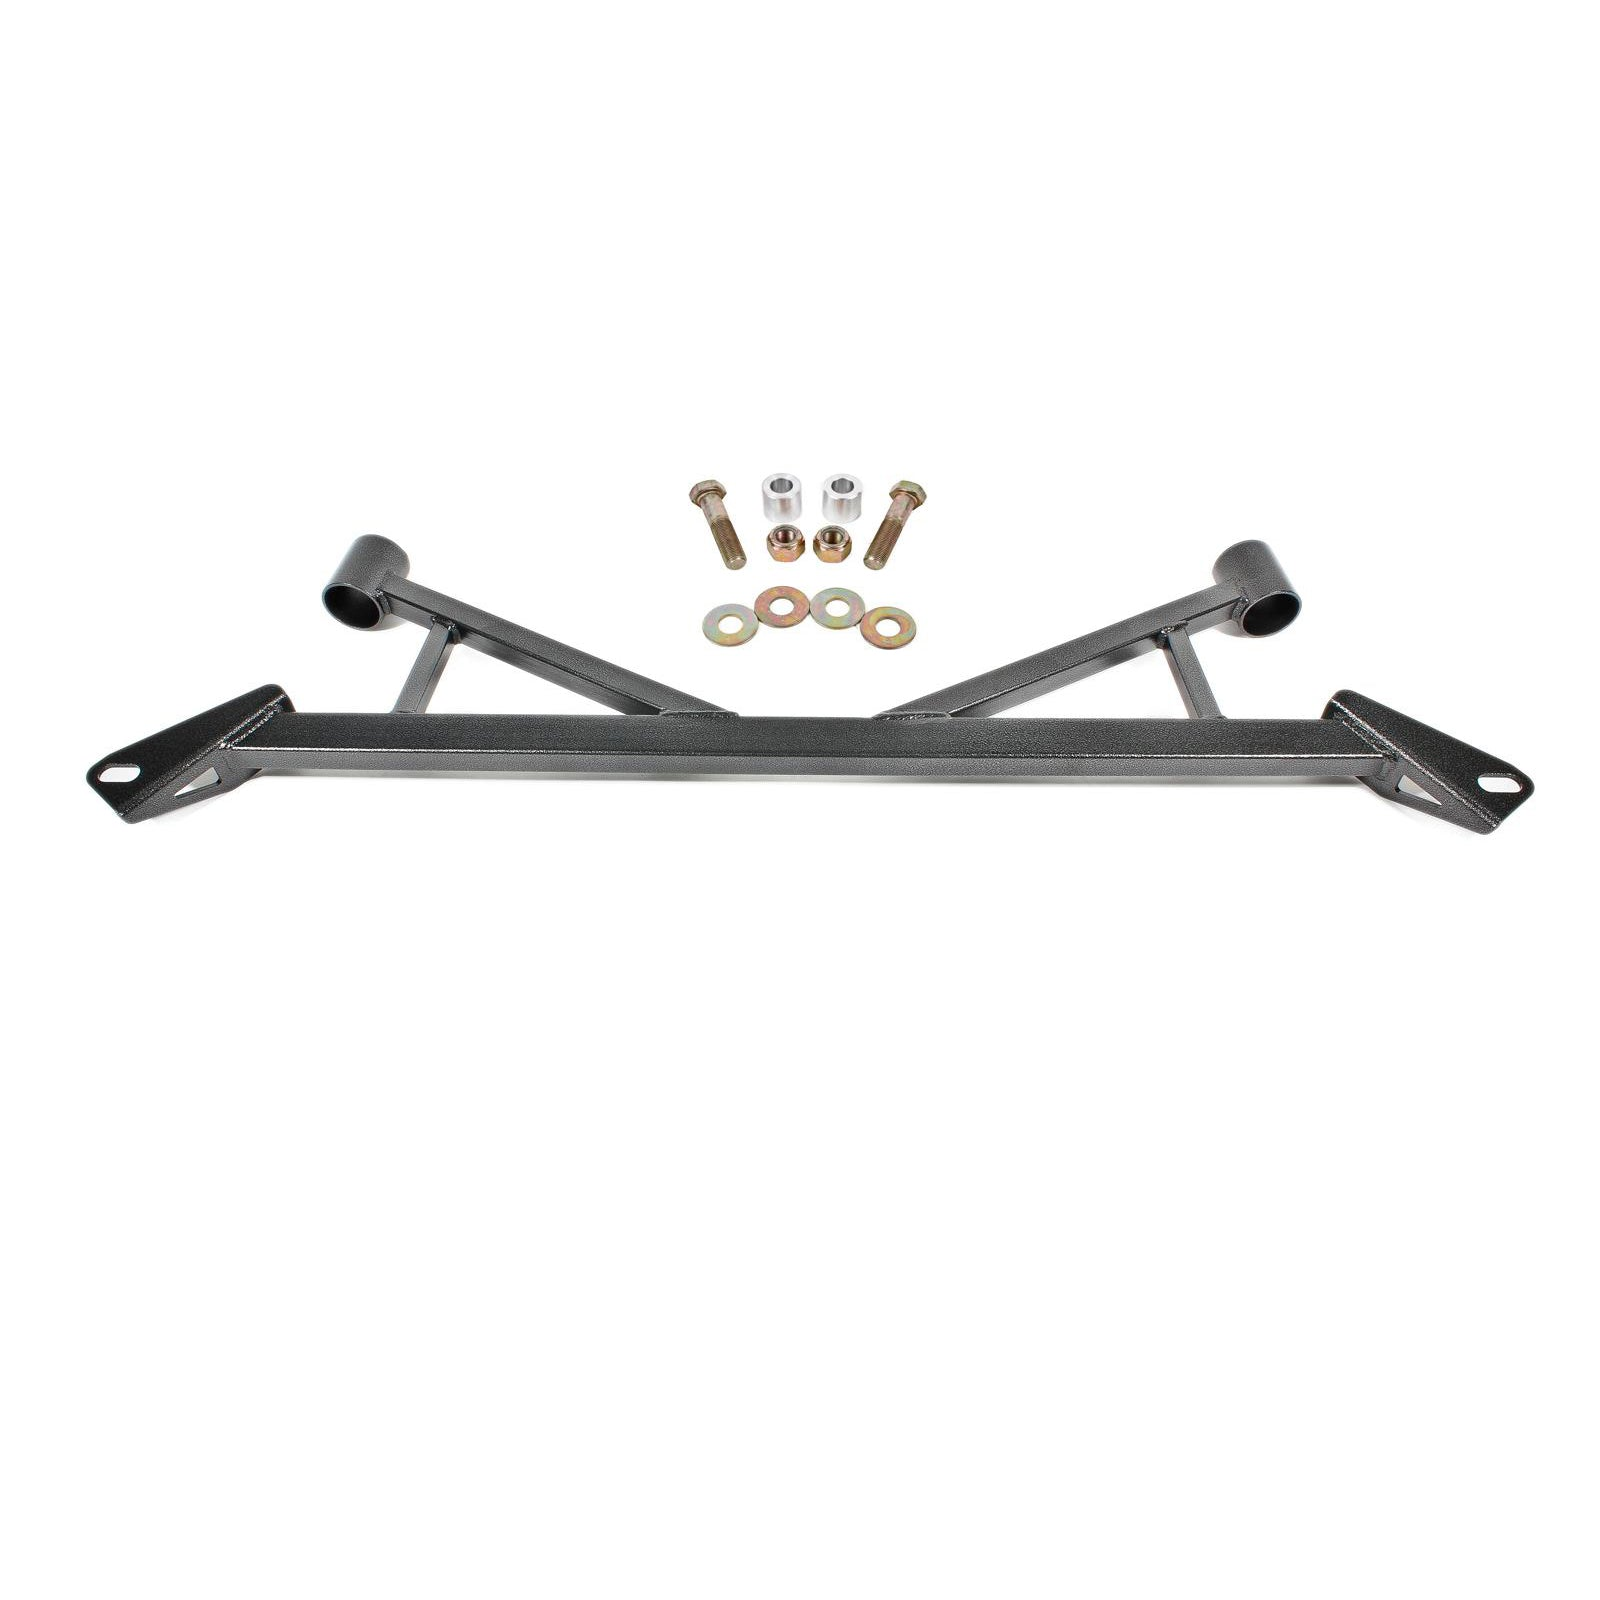 BMR Suspension Chassis Brace, Front Subframe, 4-point